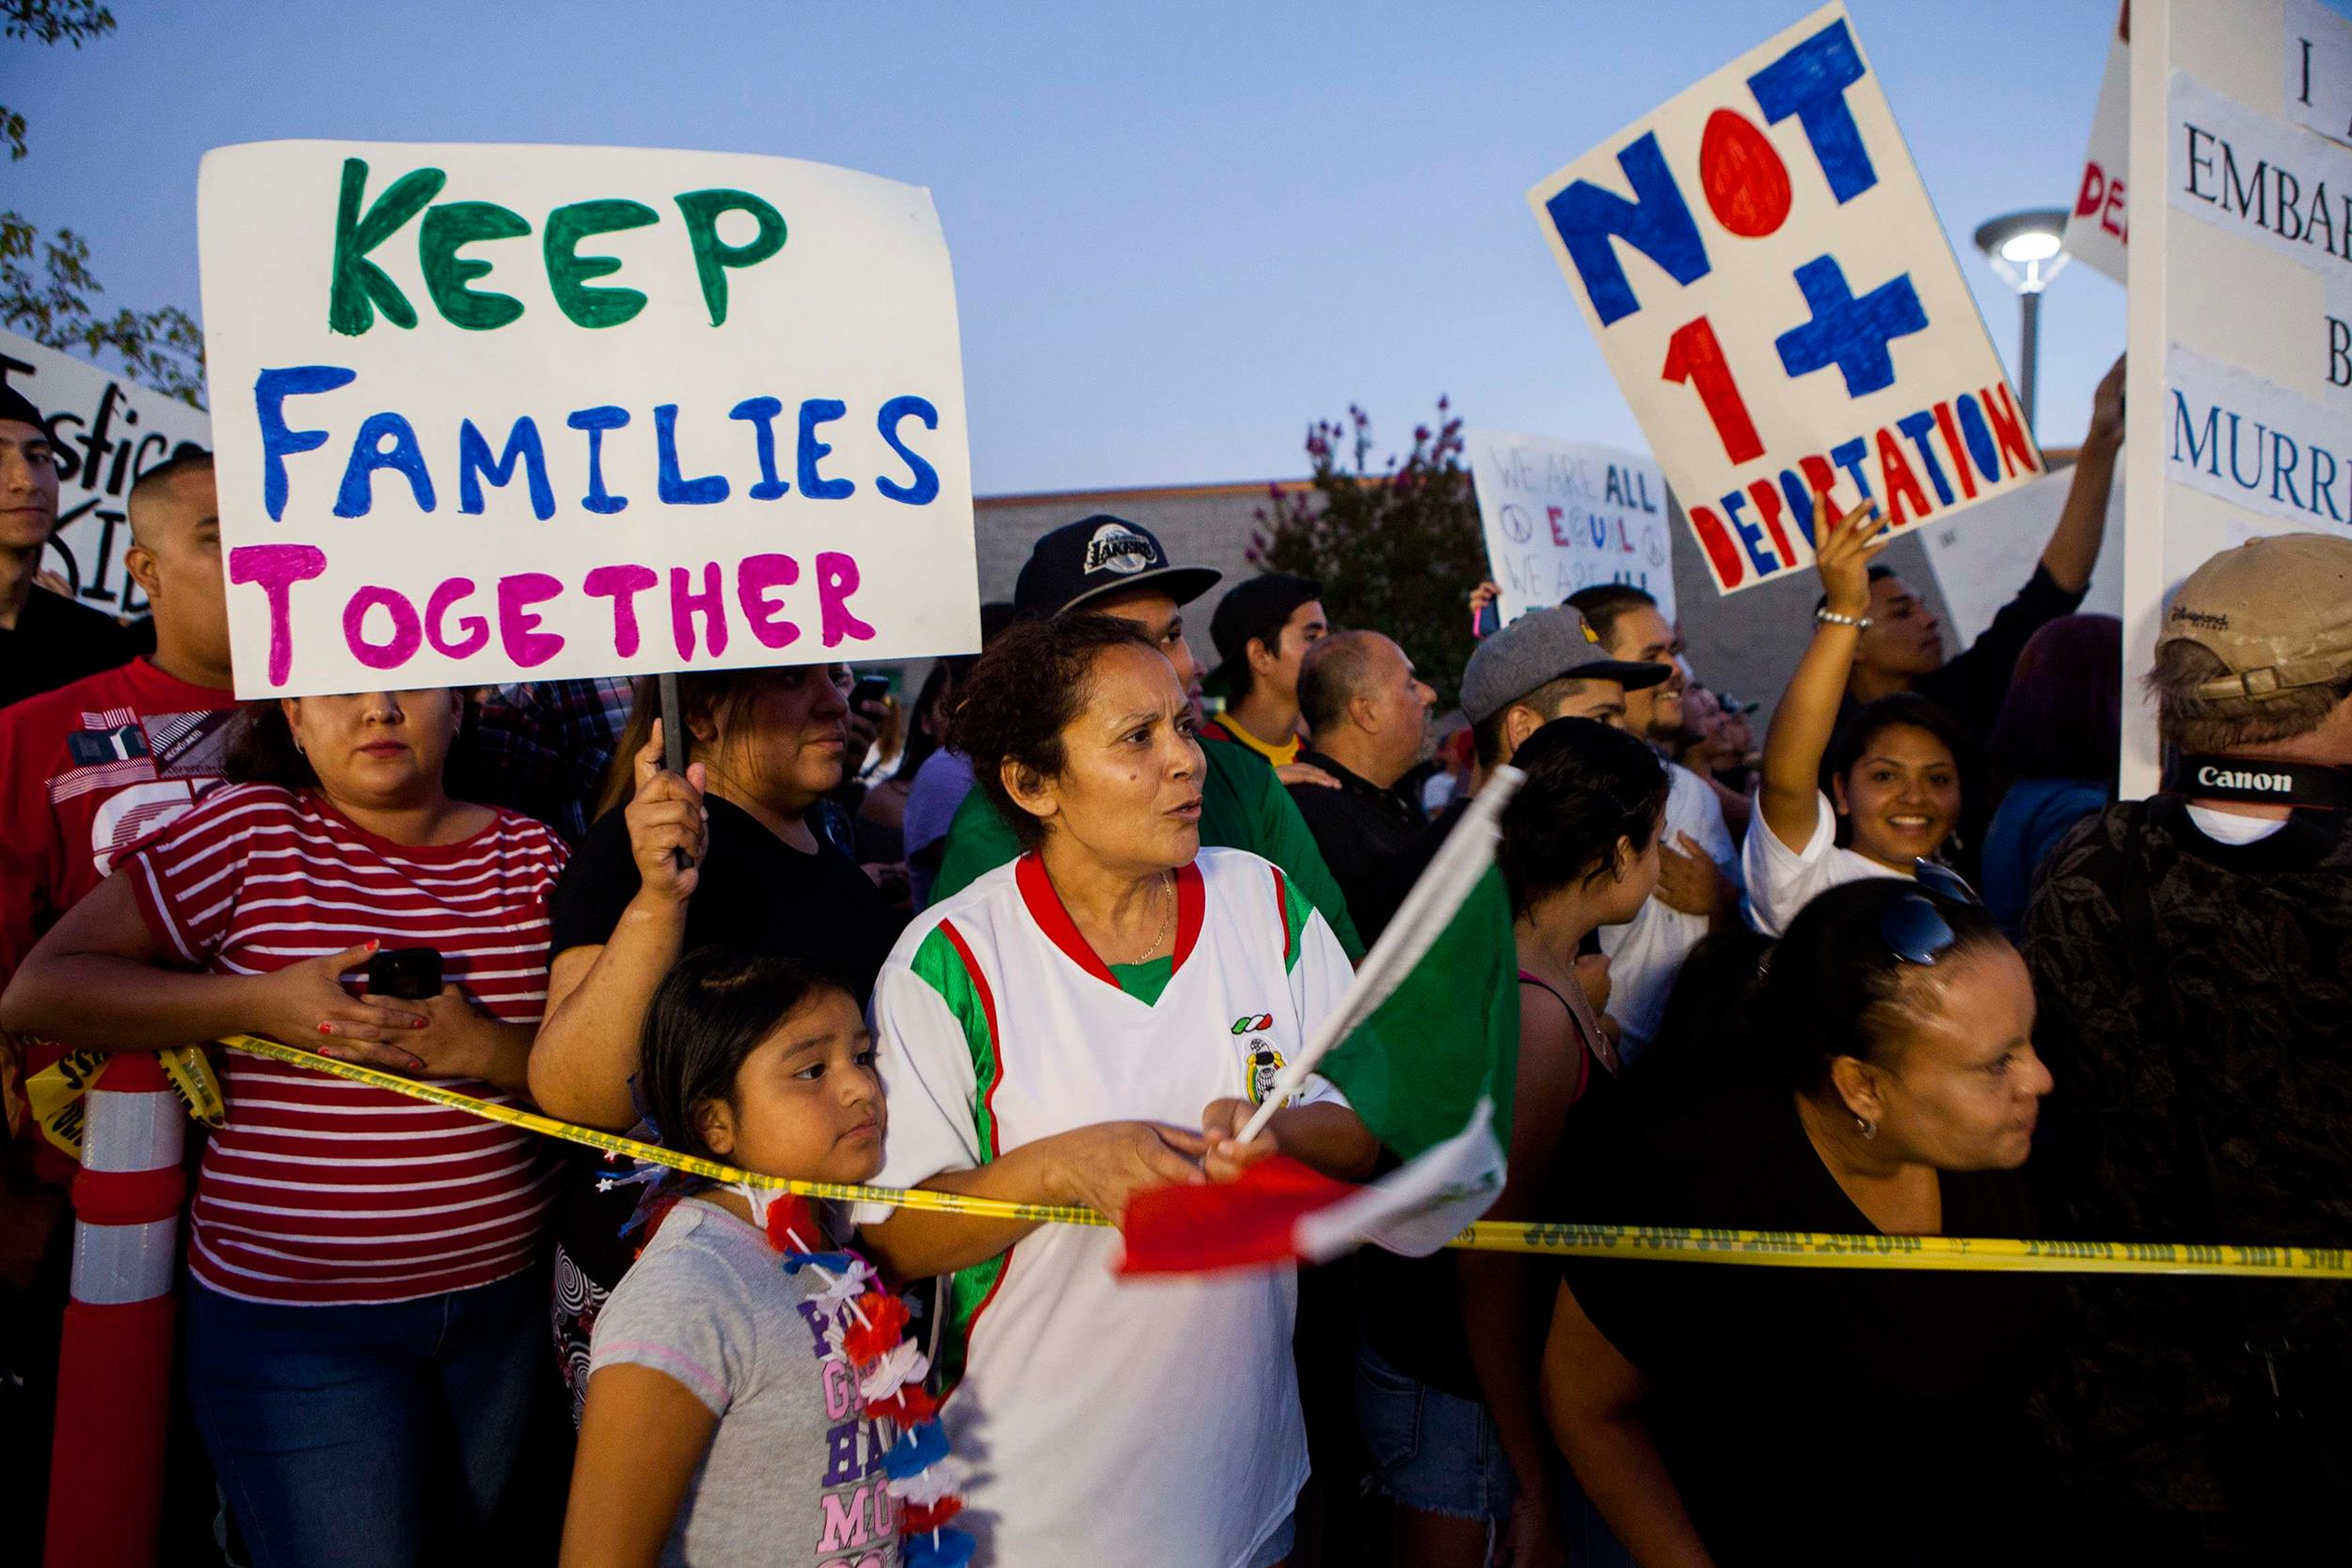 Image: Residents and protestors attend a town hall meeting to discuss the processing of undocumented immigrants in Murrieta, Calif.